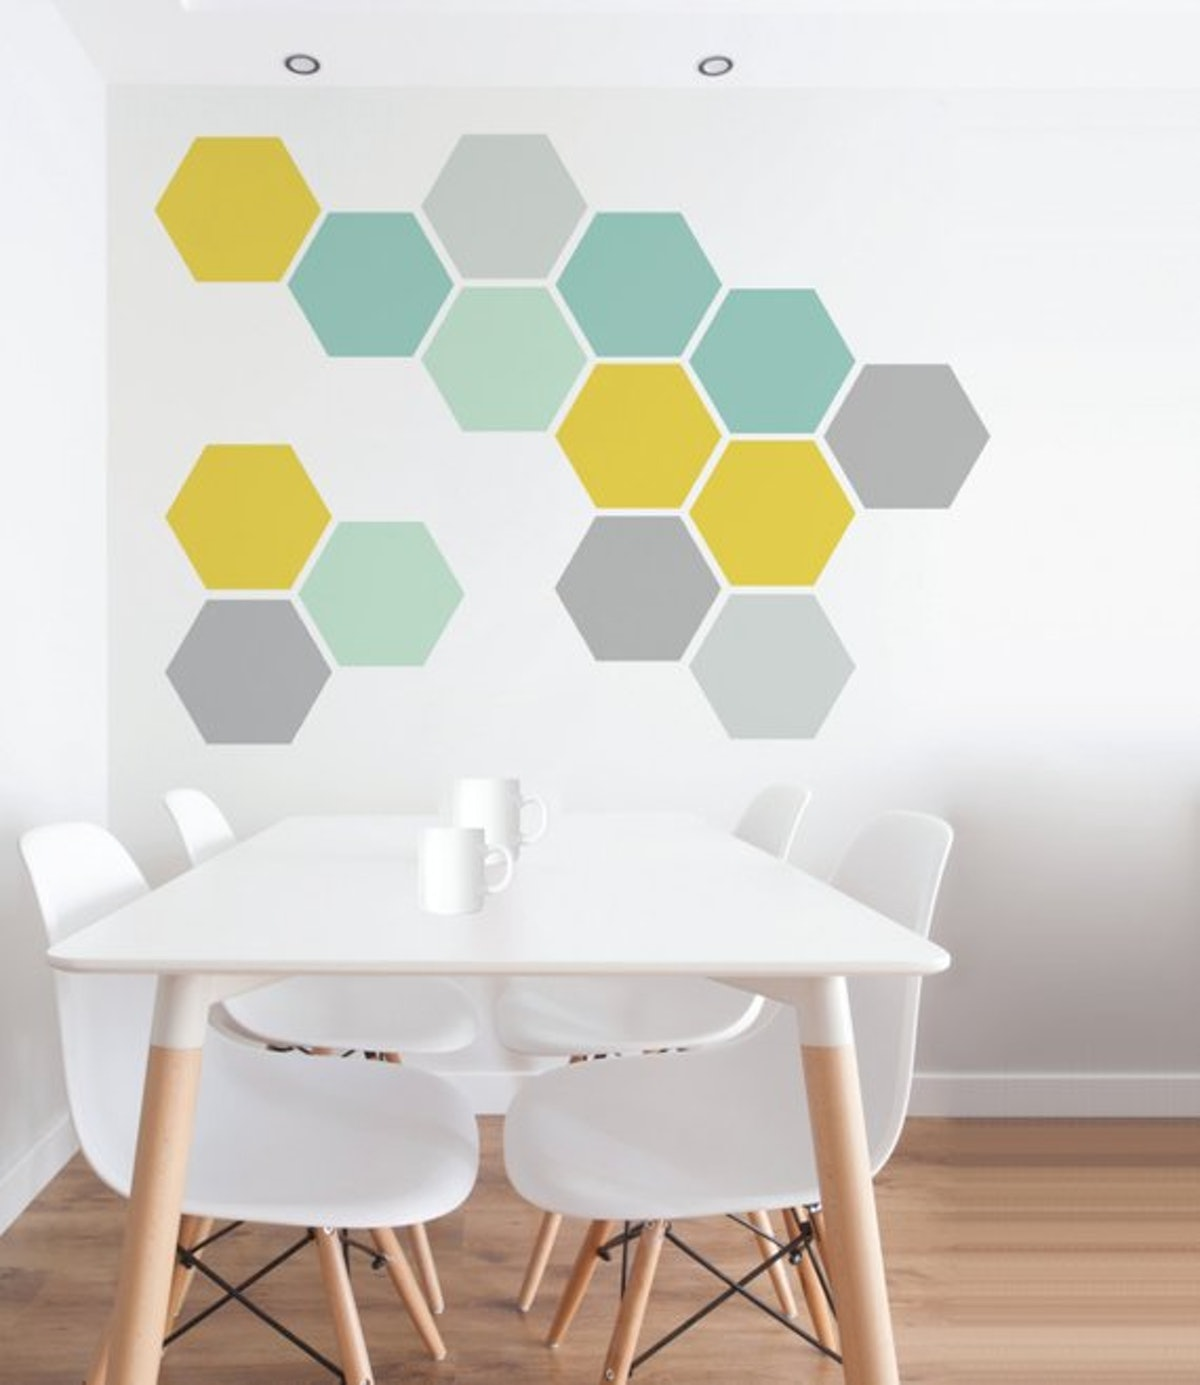 Nicematches Removable Honeycomb Wall Decals (set of 8)